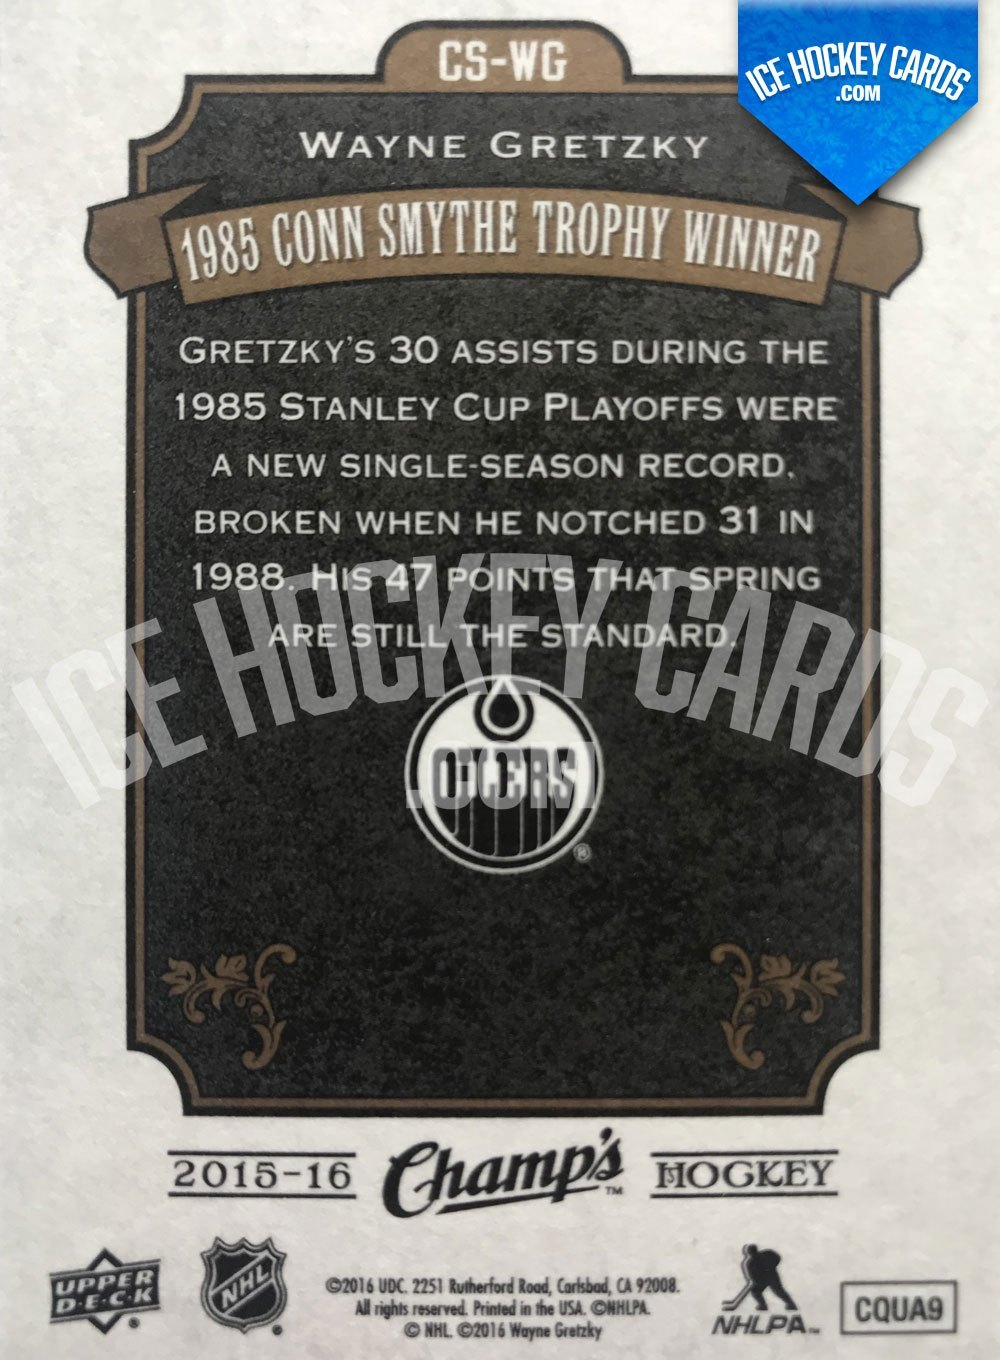 Upper Deck - Champs 15-16 - Wayne Gretzky 1985 Conn Smythe Trophy Winner back